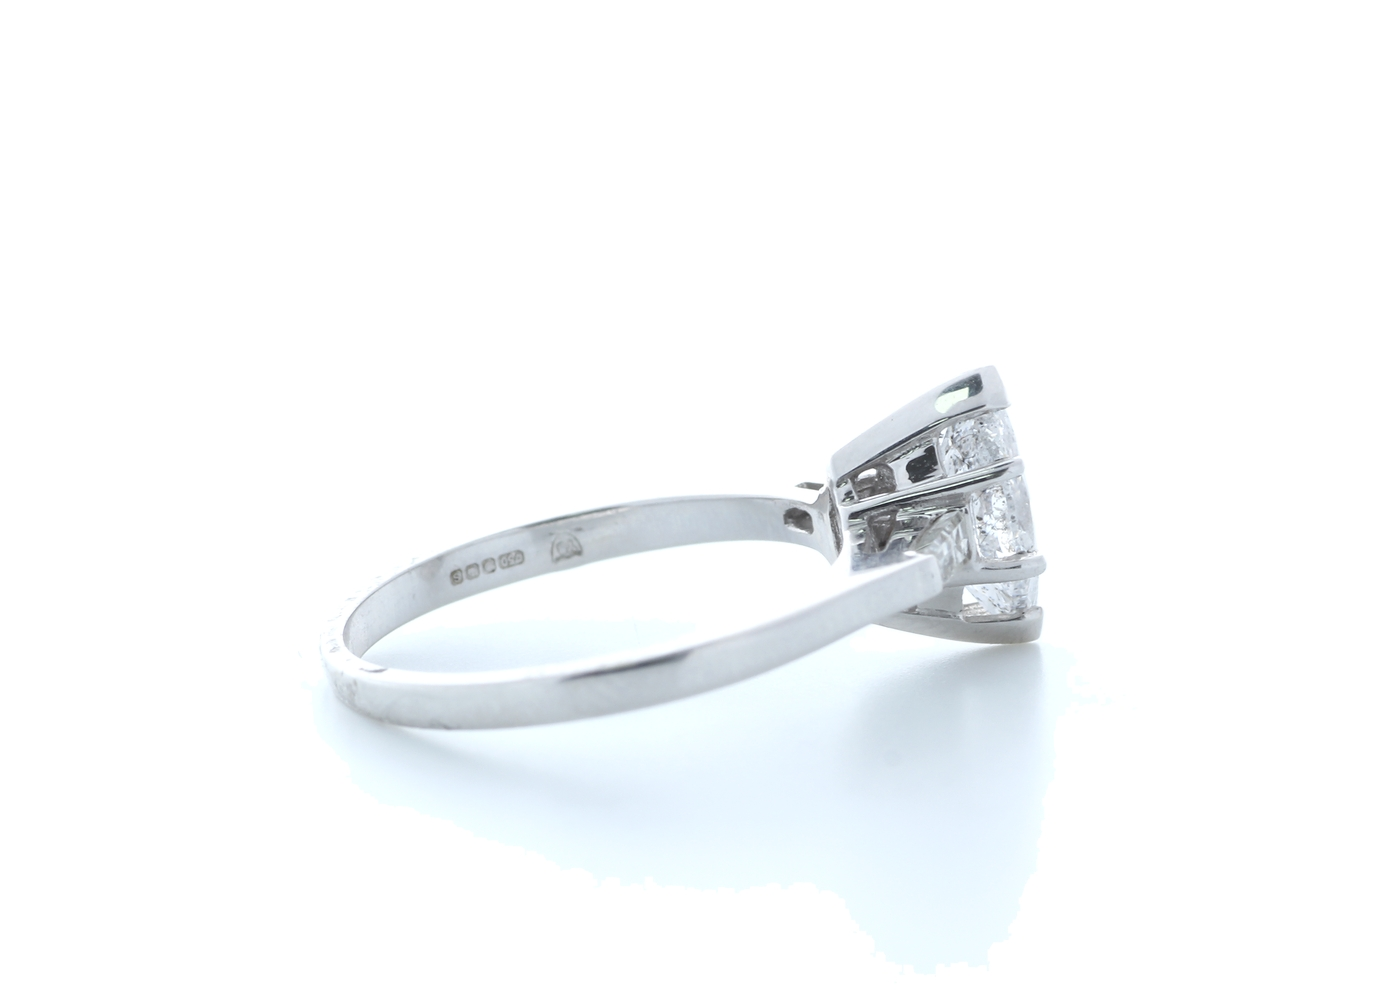 18ct White Gold Marquise Diamond With Stone Set Shoulders 1.22 Carats - Image 4 of 5